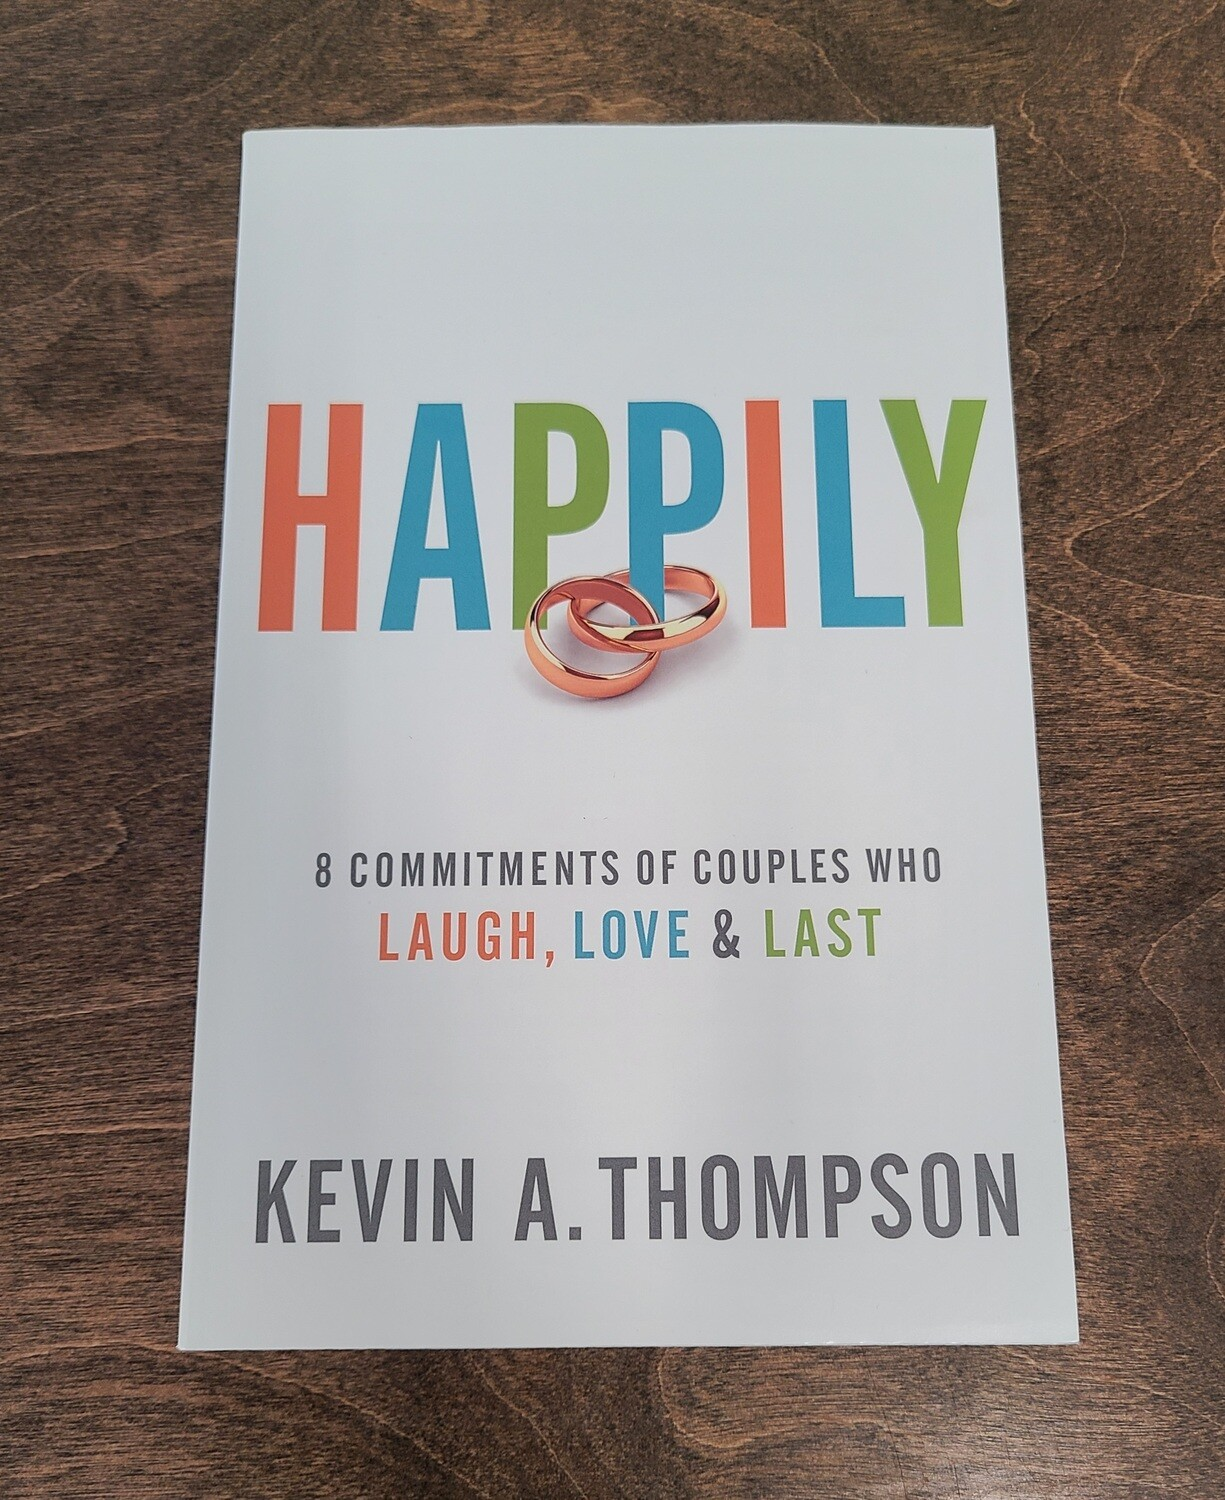 Happily: 8 Commitments of Couples Who Laugh, Love, and Last by Kevin A. Thompson